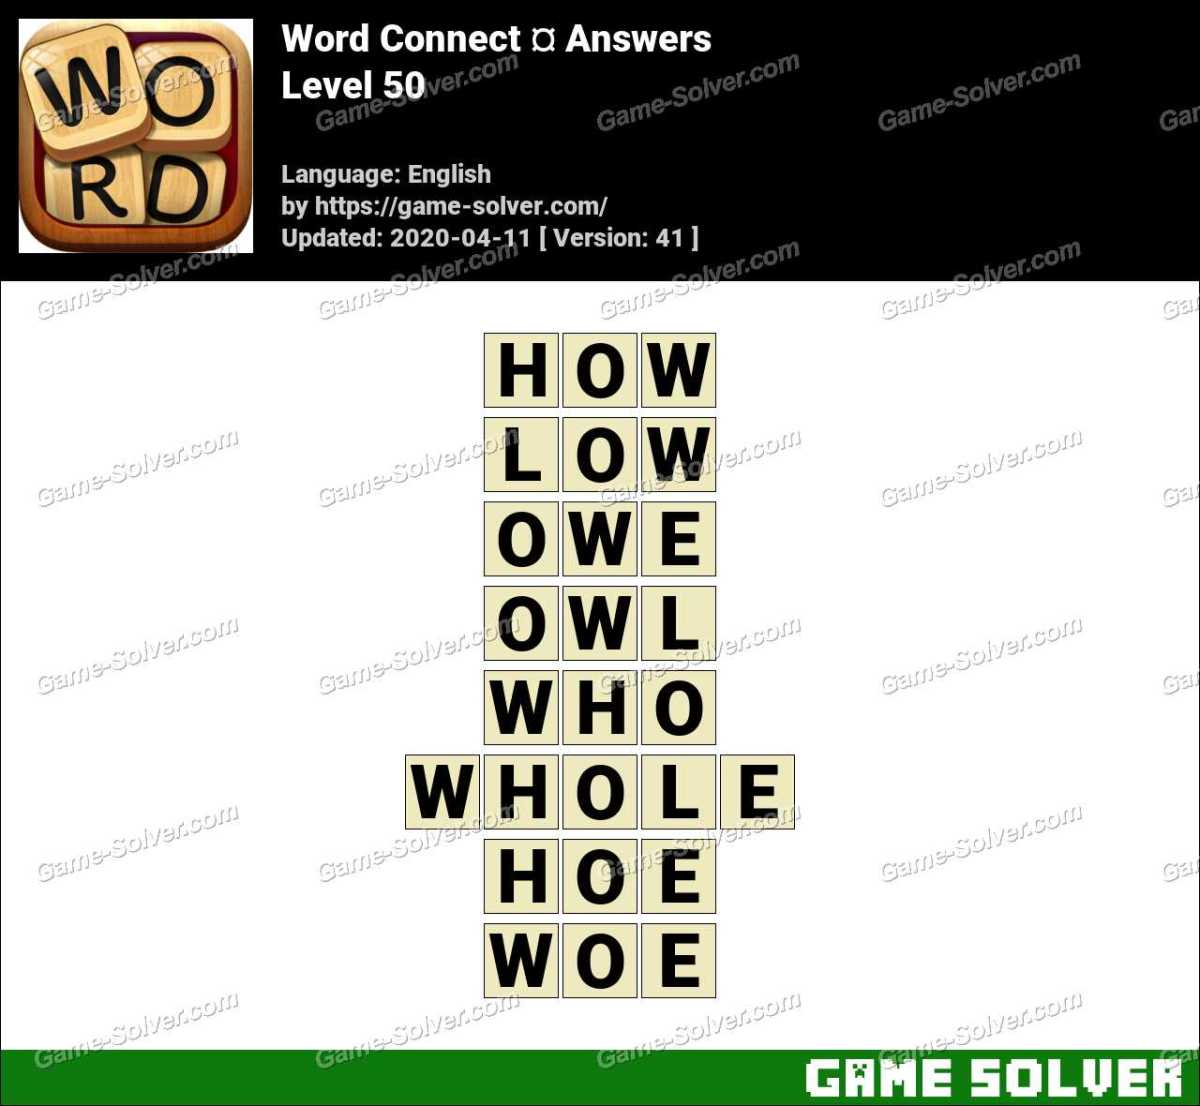 Word Connect Level 50 Answers